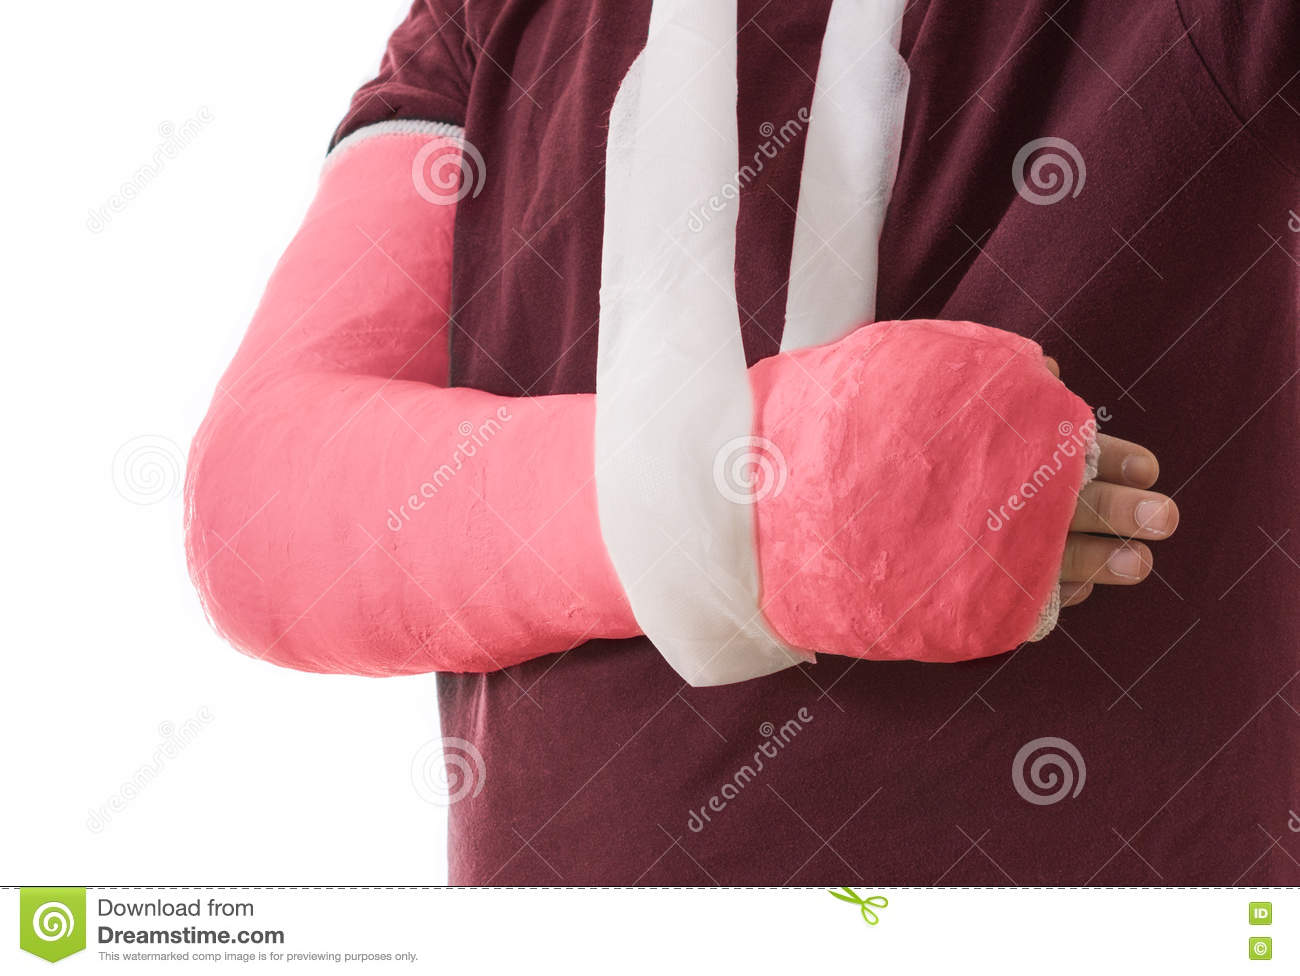 Broken arm in red plaster cast and sling stock photo for Red top gypsum plaster